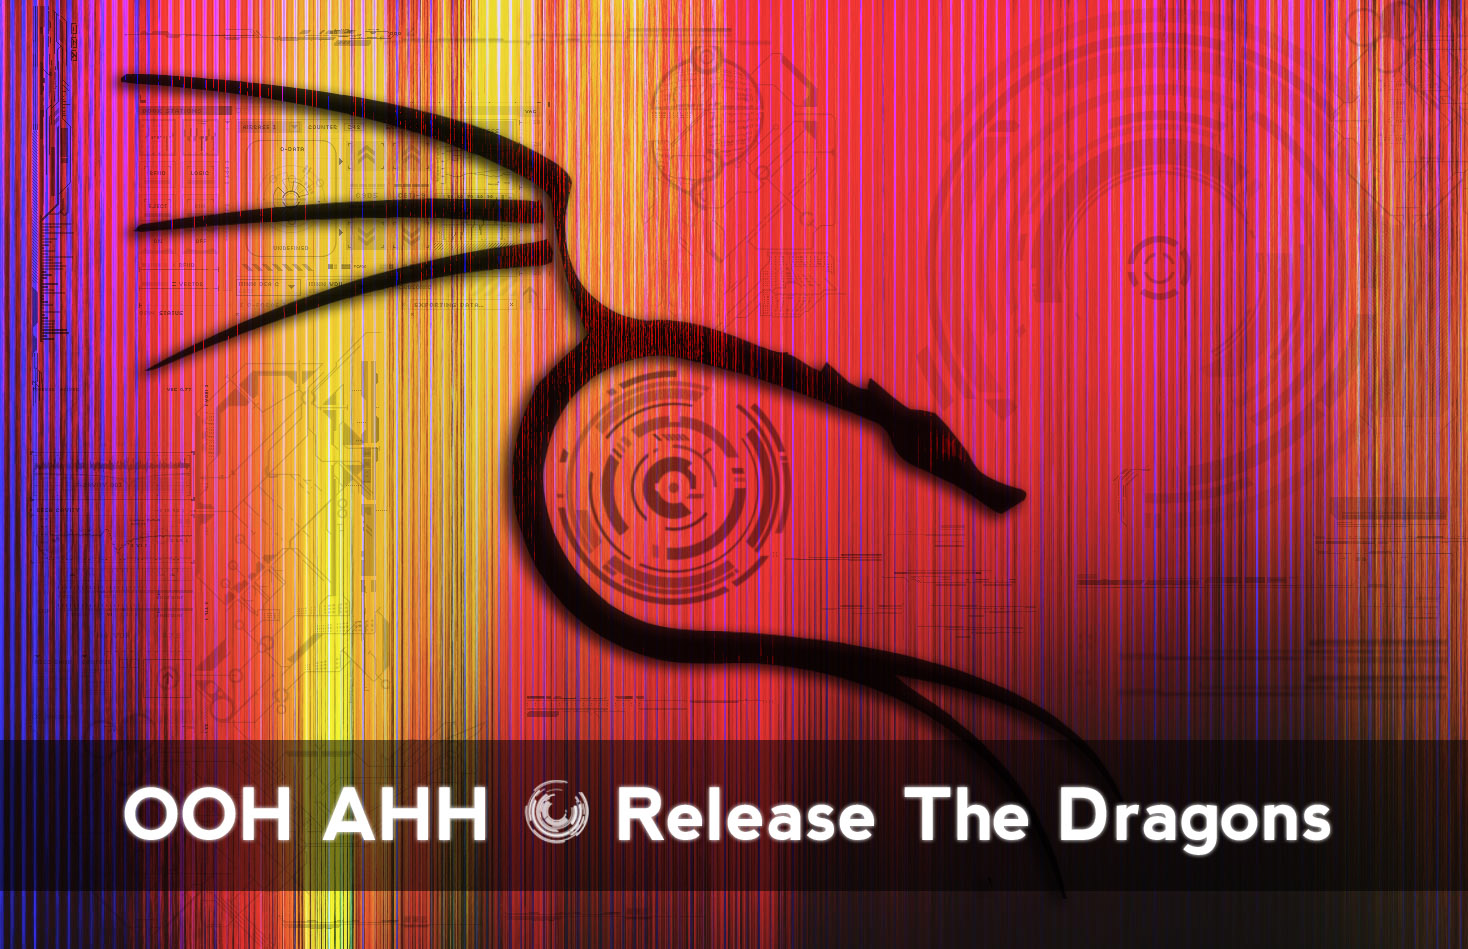 Release The Dragons